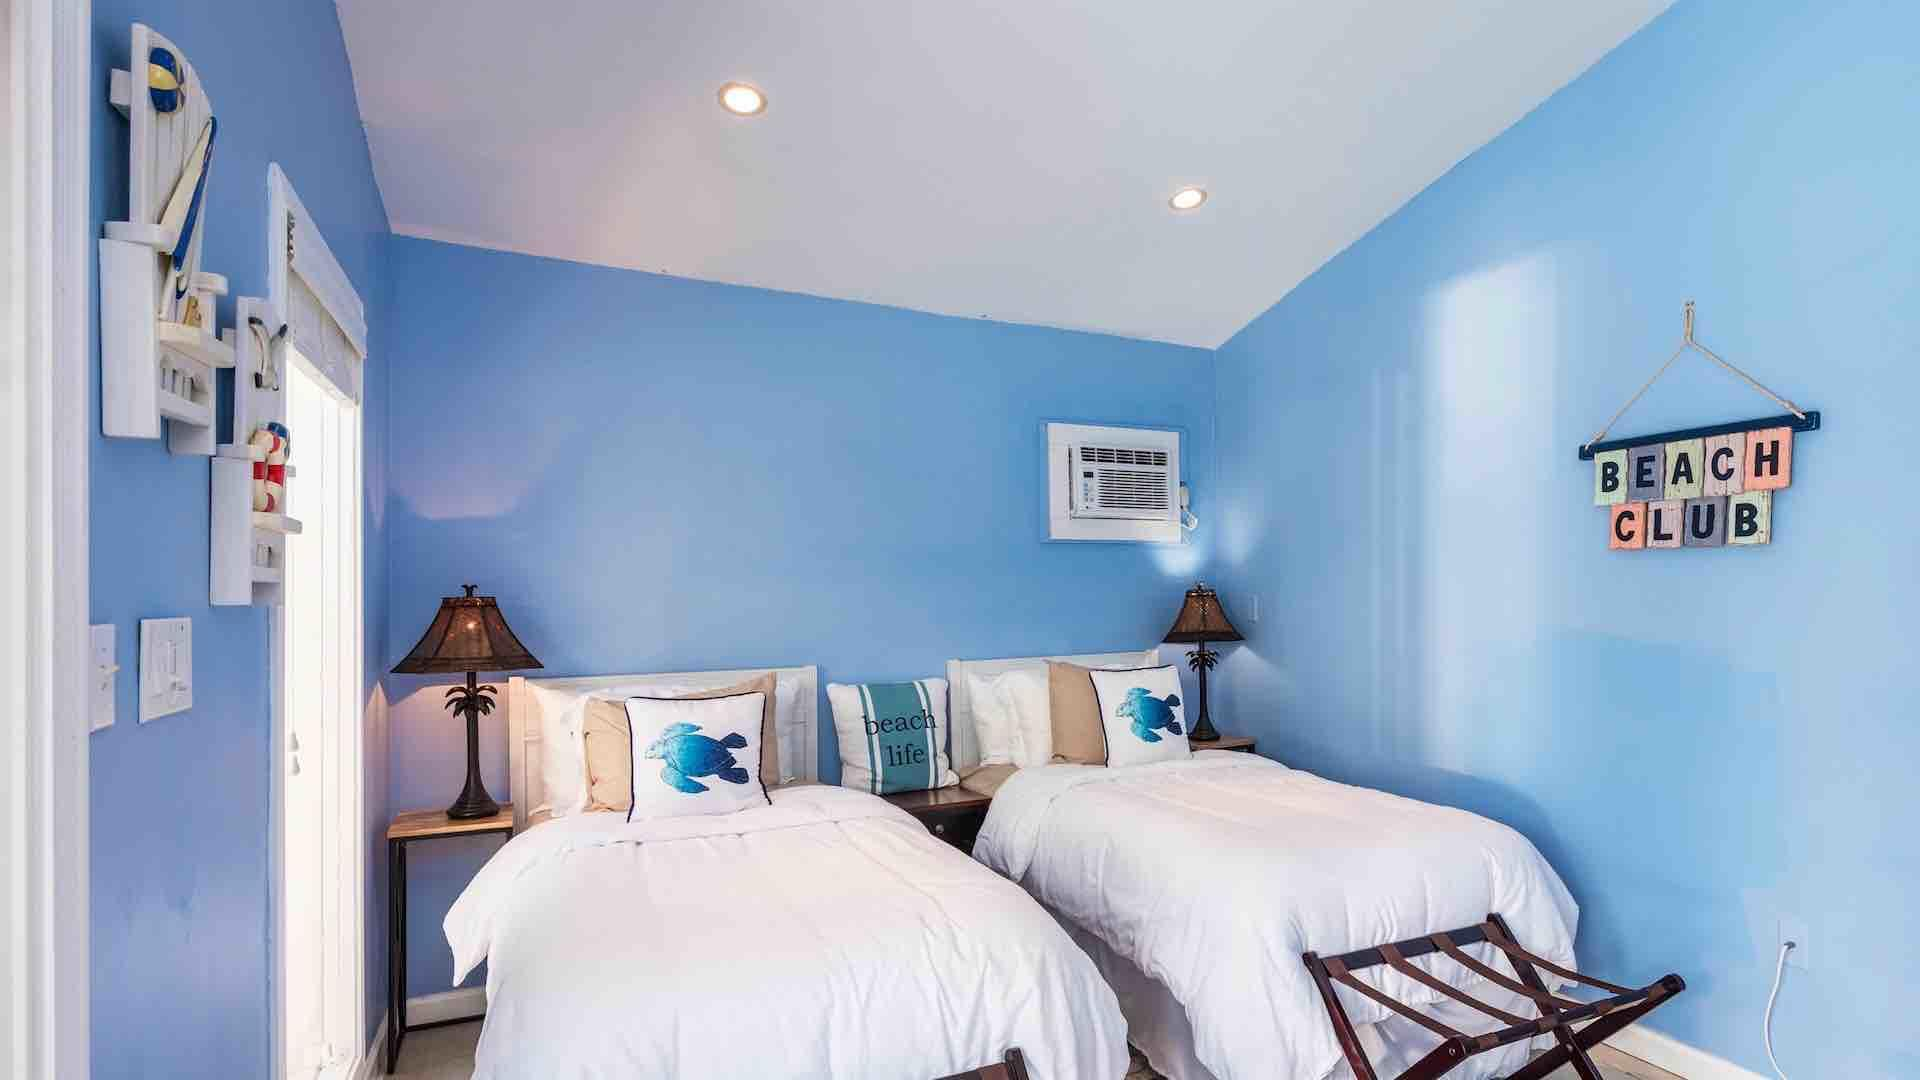 The guest house has two twin beds that can convert to a King bed...